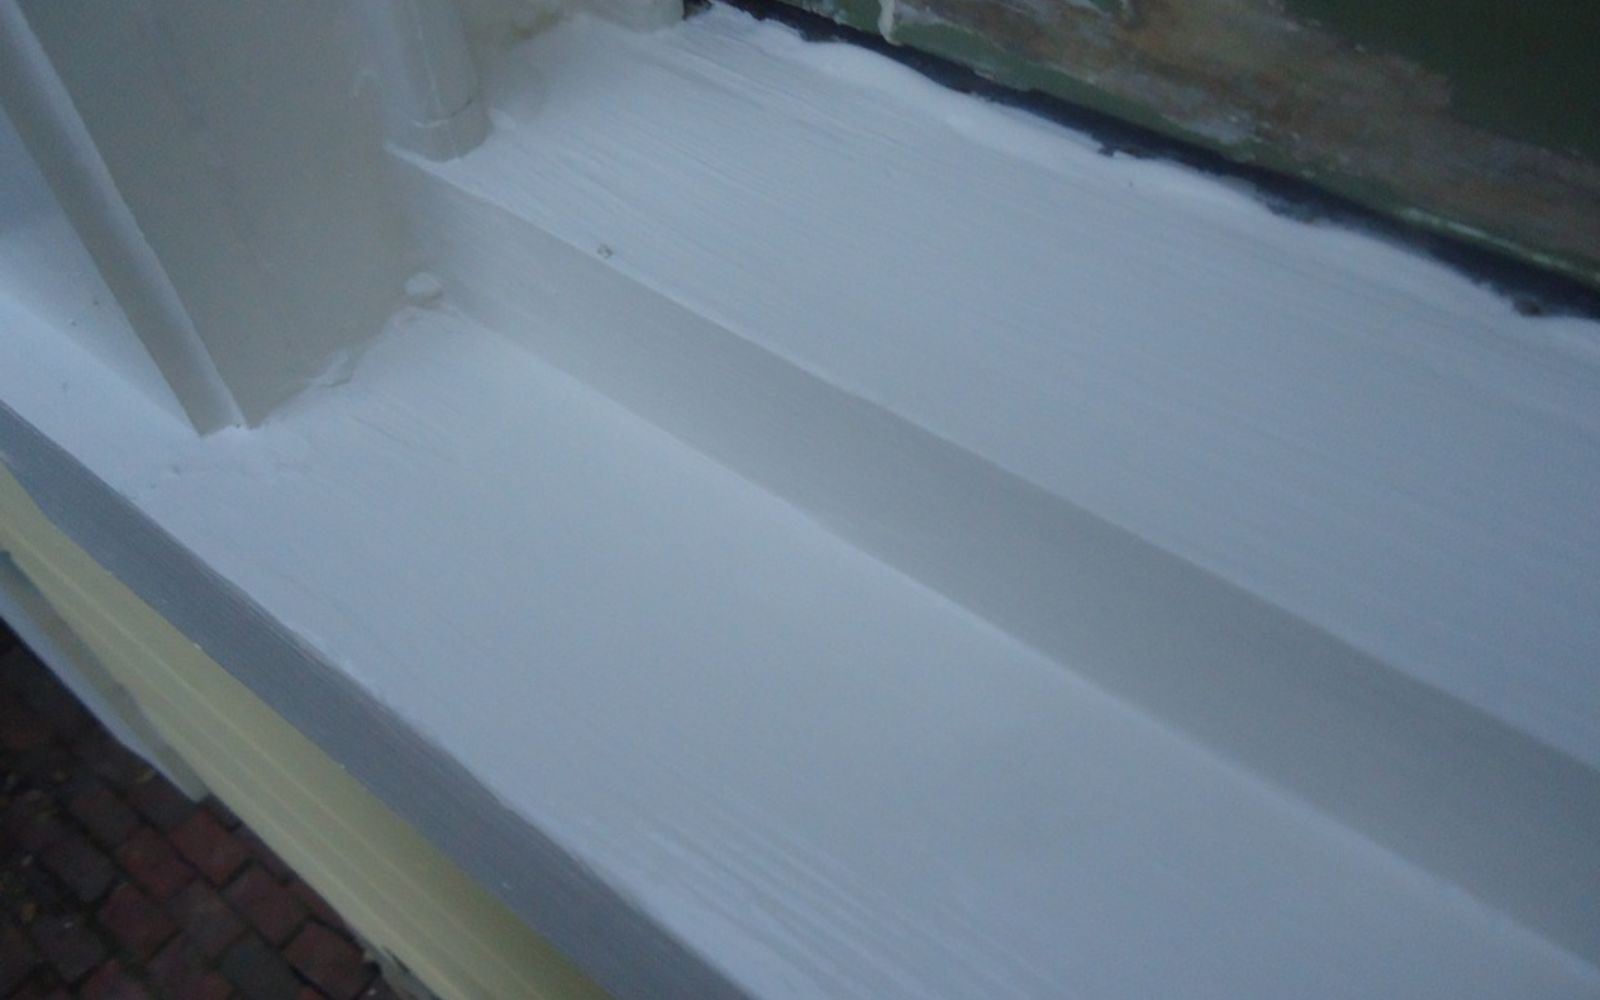 s 30 tricks to help you fix the wood in your home, Use Wood Epox To Repair A Wooden Windowsill